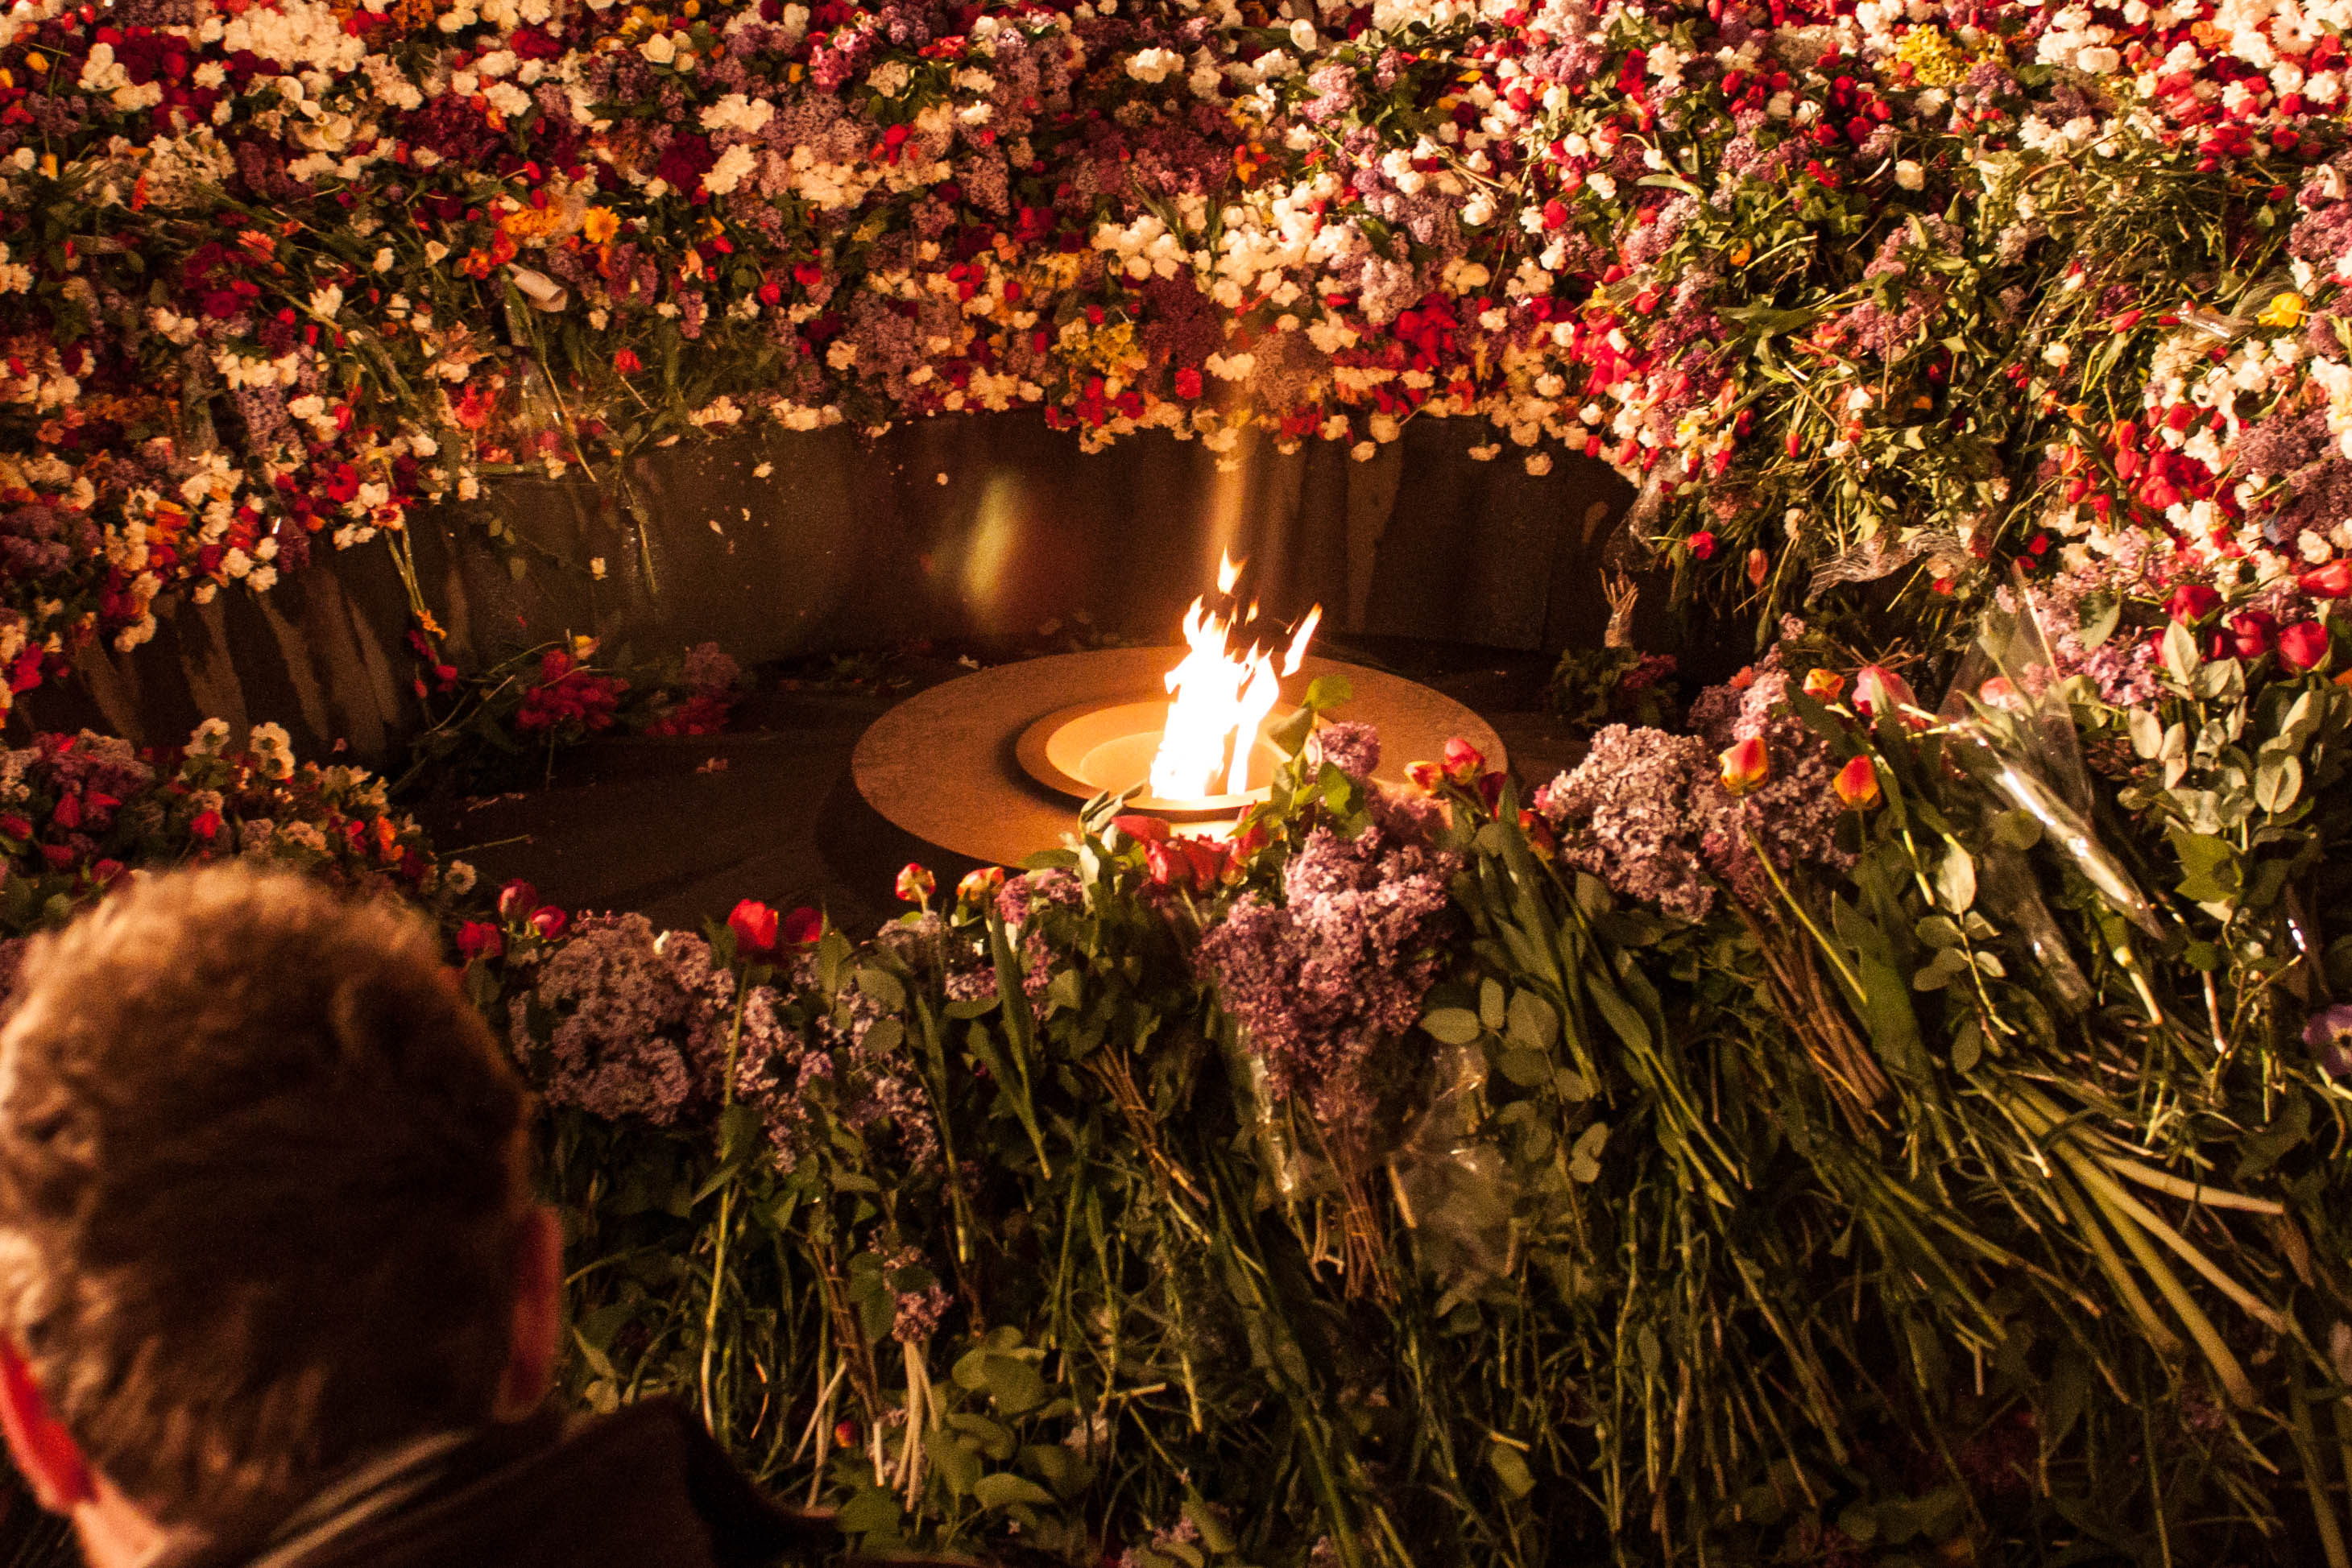 The eternal flame is seen as a man lays a flower inside Tsitsernakaberd, April 24th. Photo Taken by Joey Ayoub.